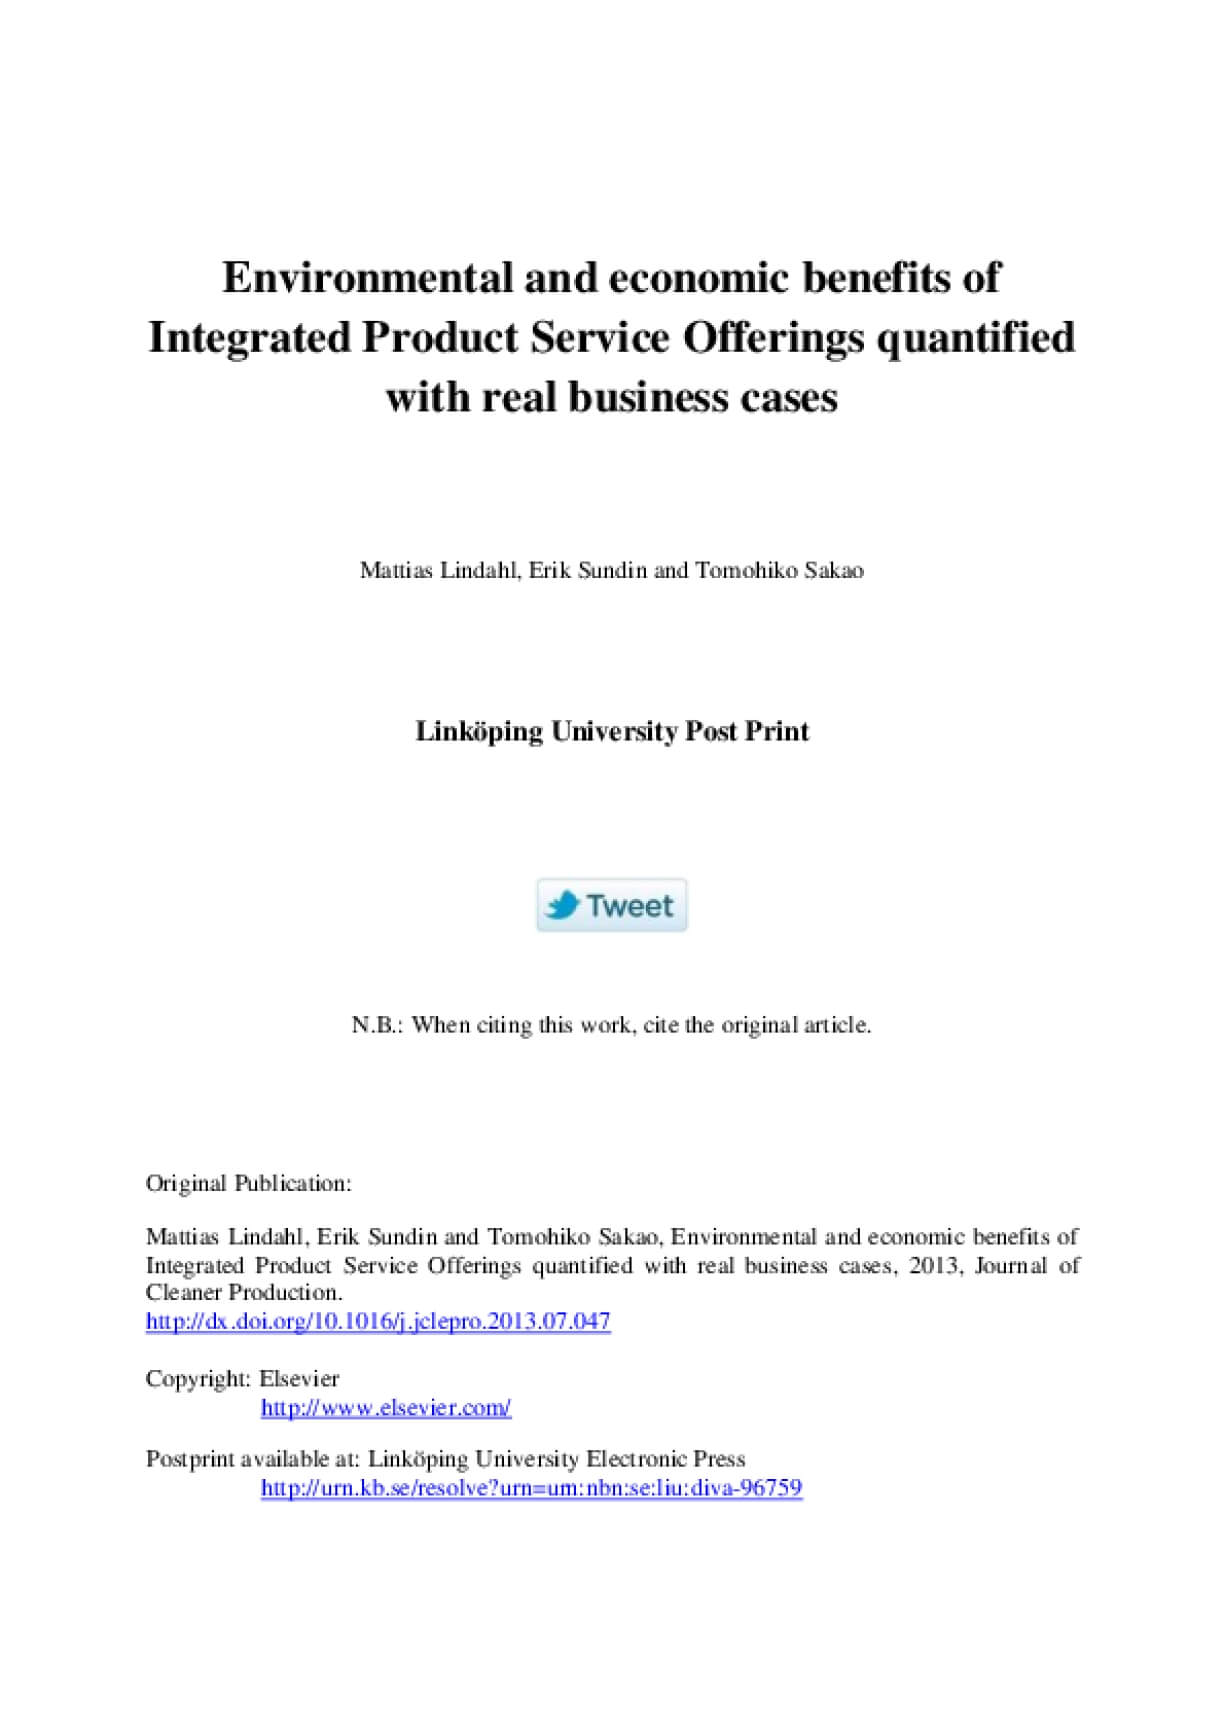 Environmental and Economic Benefits of Integrated Product Service Offerings Quantified with Real Business Cases